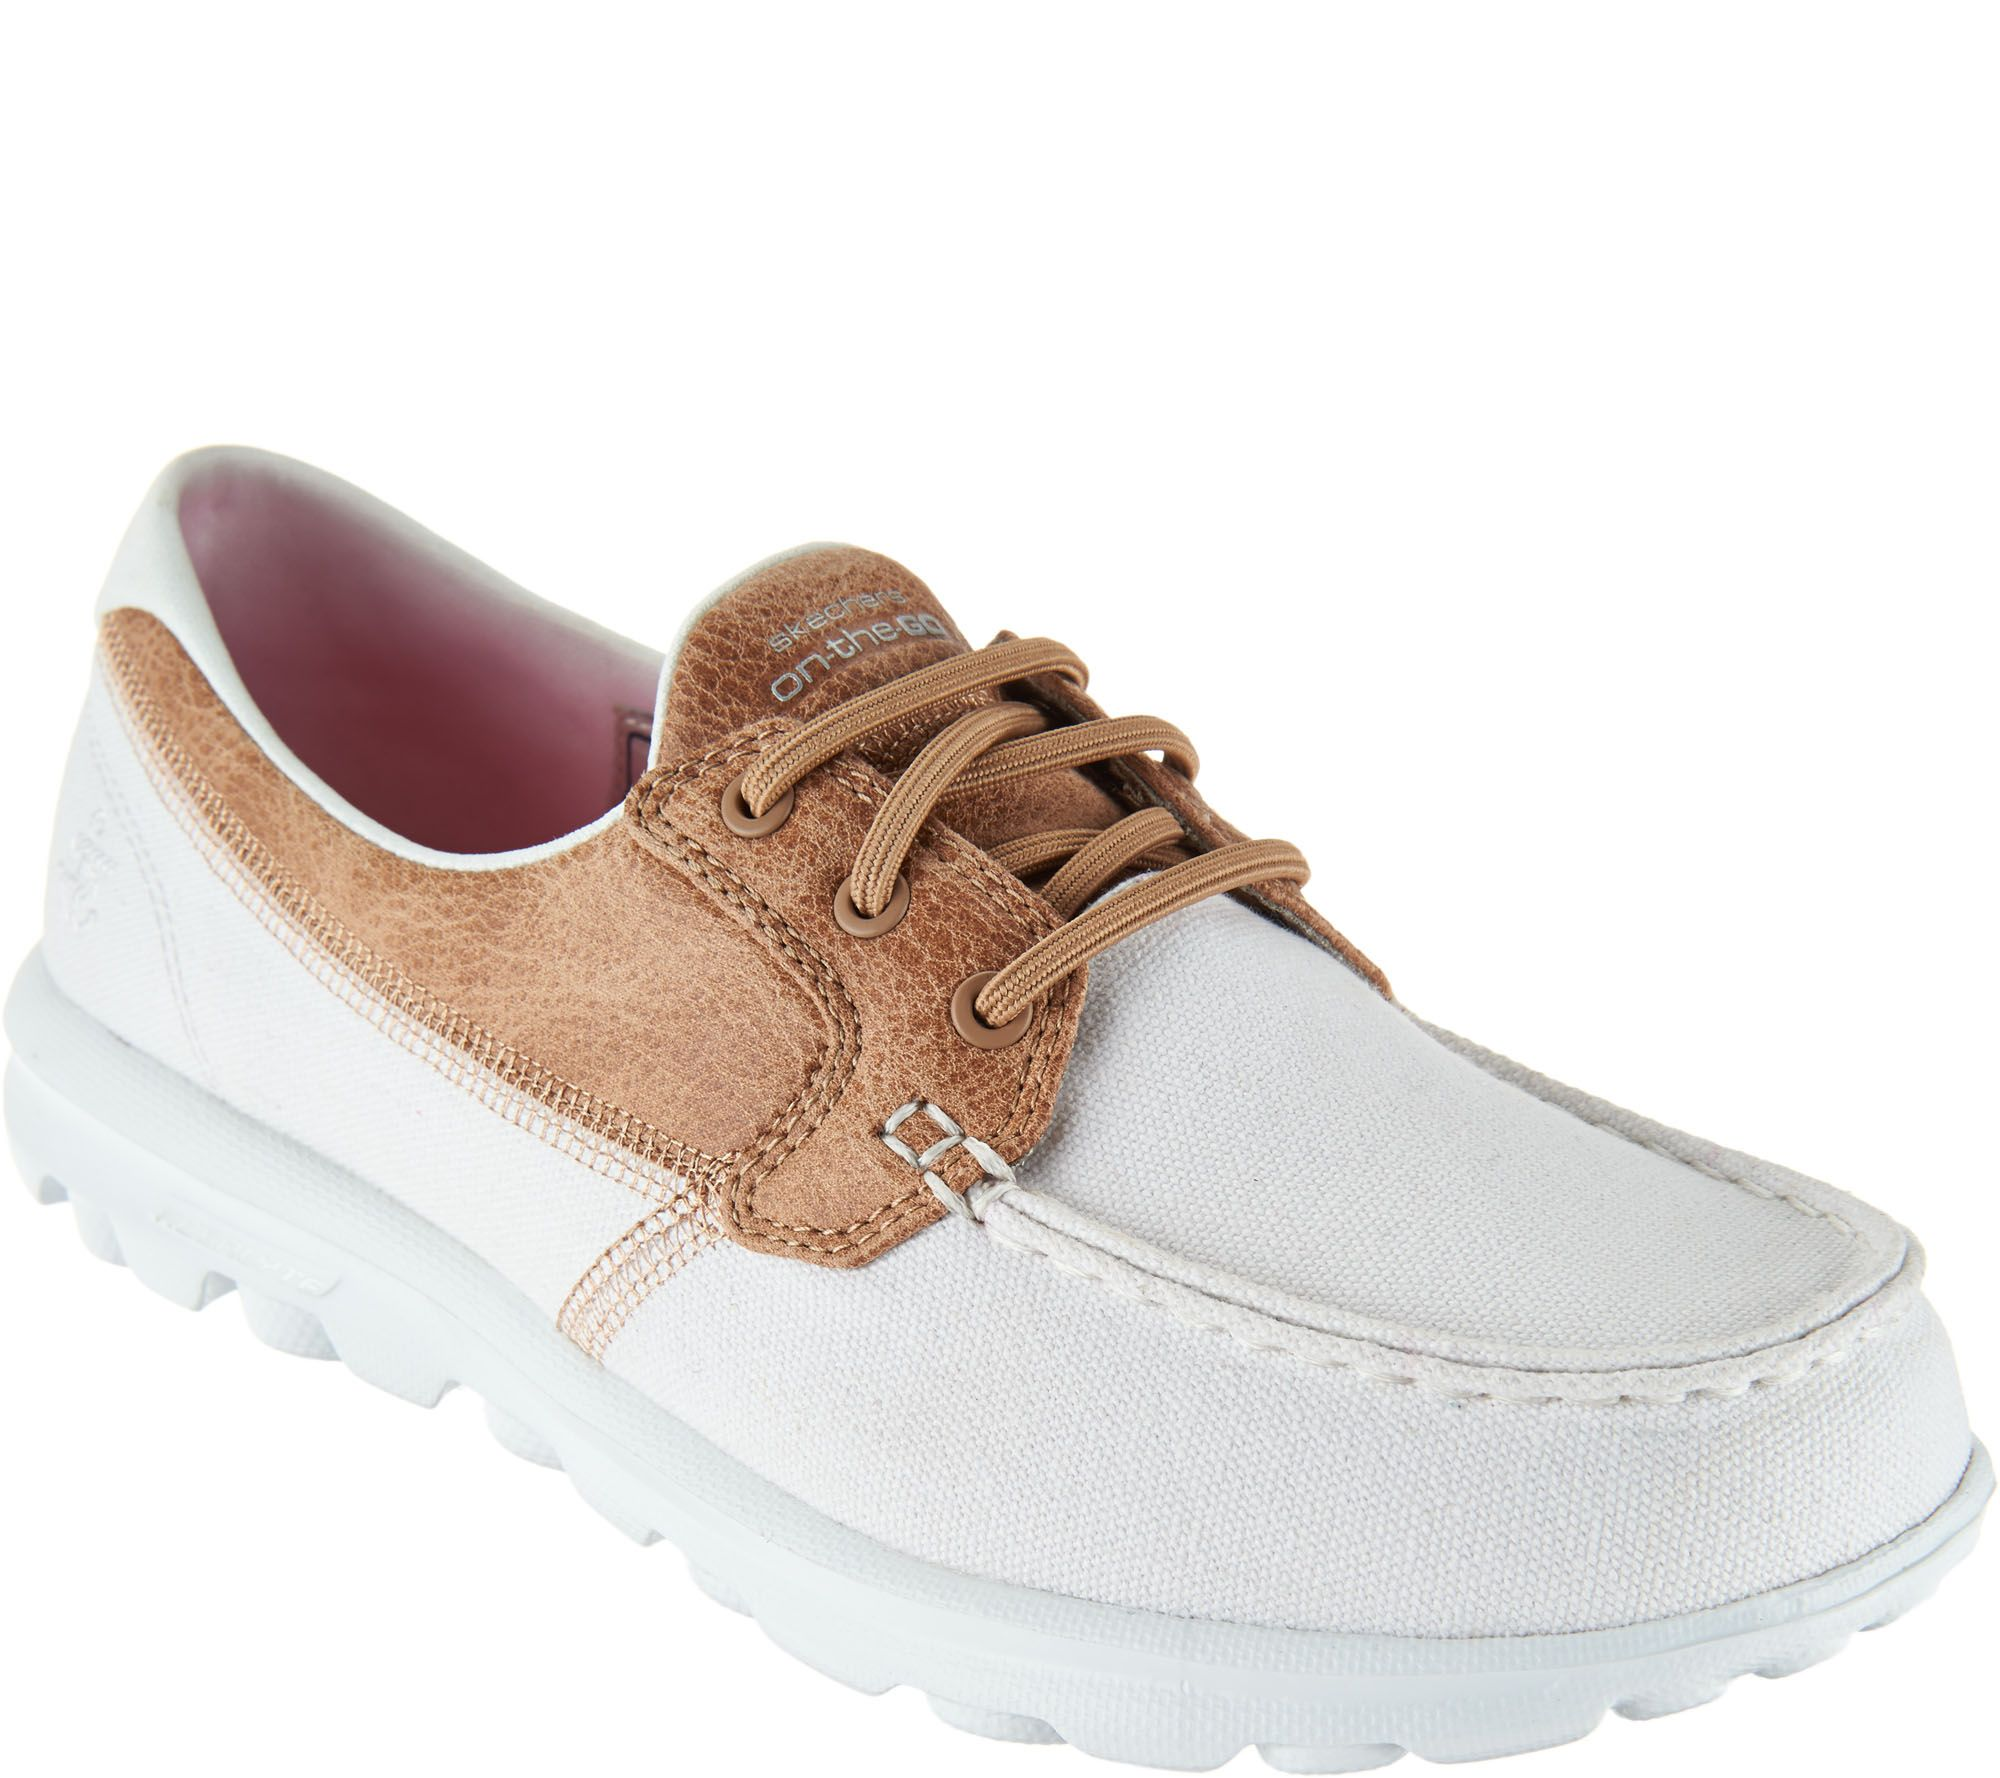 skechers yoga mat shoes. skechers on-the-go boat shoes with goga mat - seaside a287178 yoga